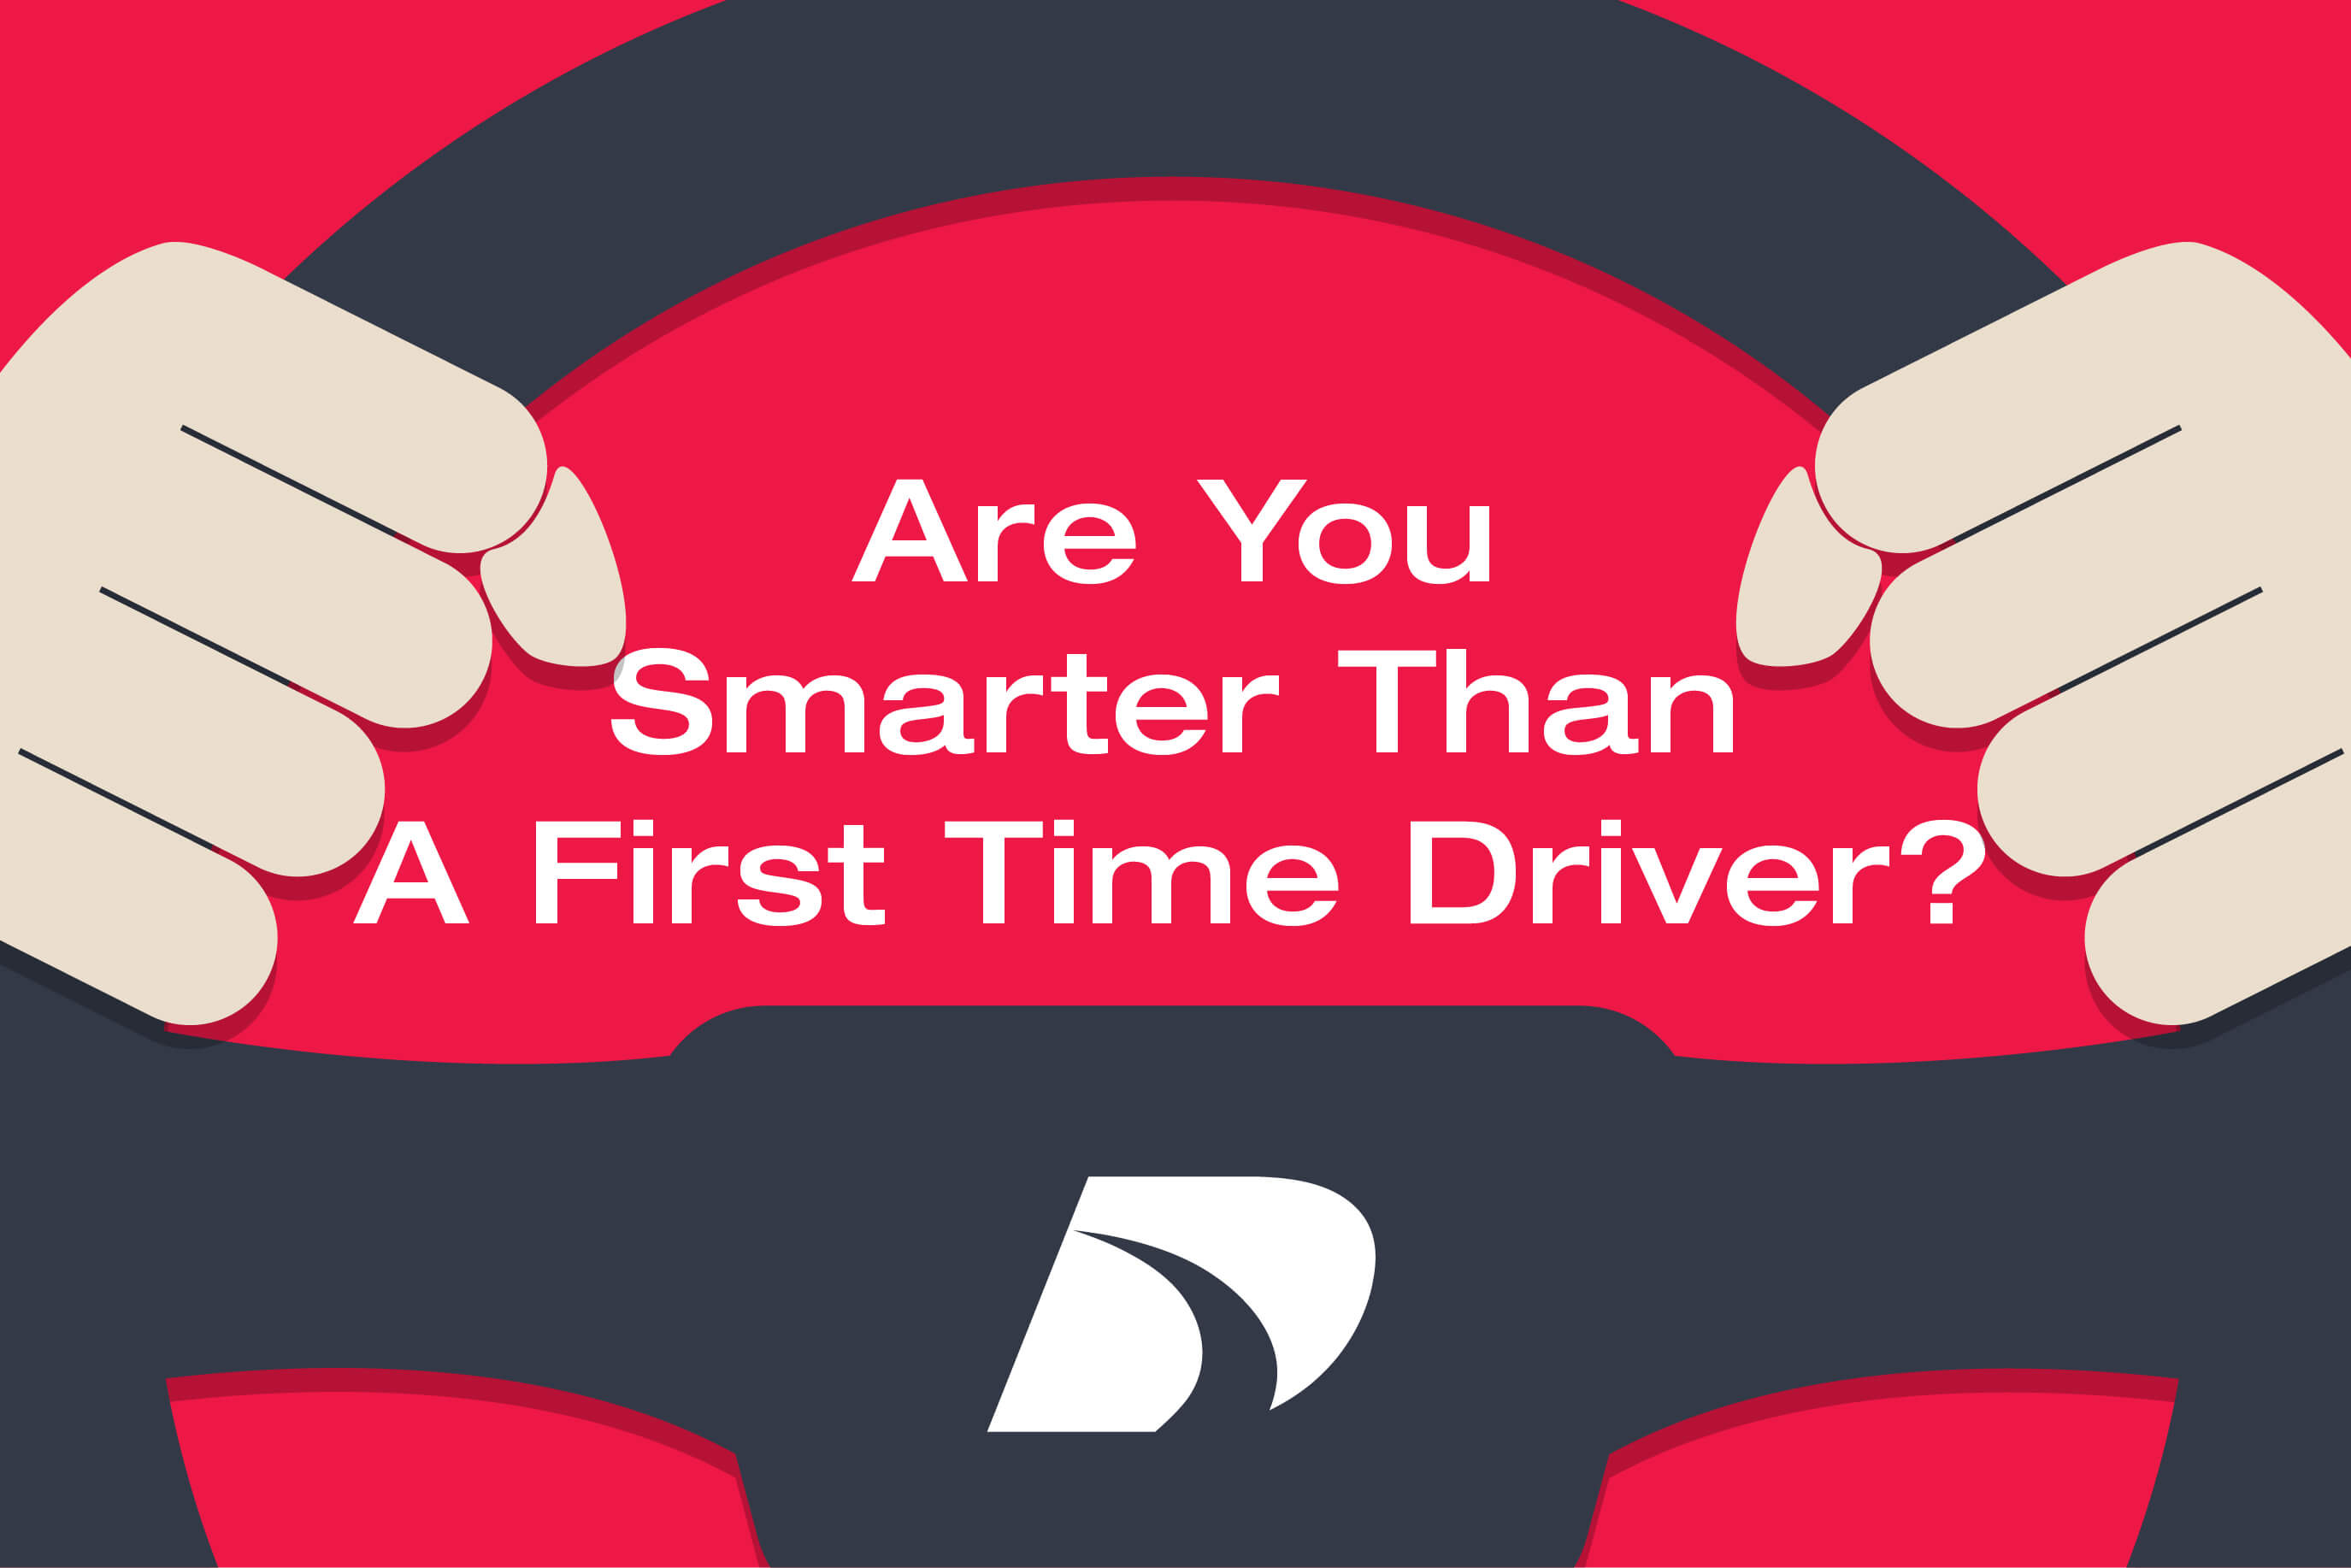 Direct General Auto Insurance >> Are You Smarter Than A First Time Driver? [QUIZ] | Direct Auto